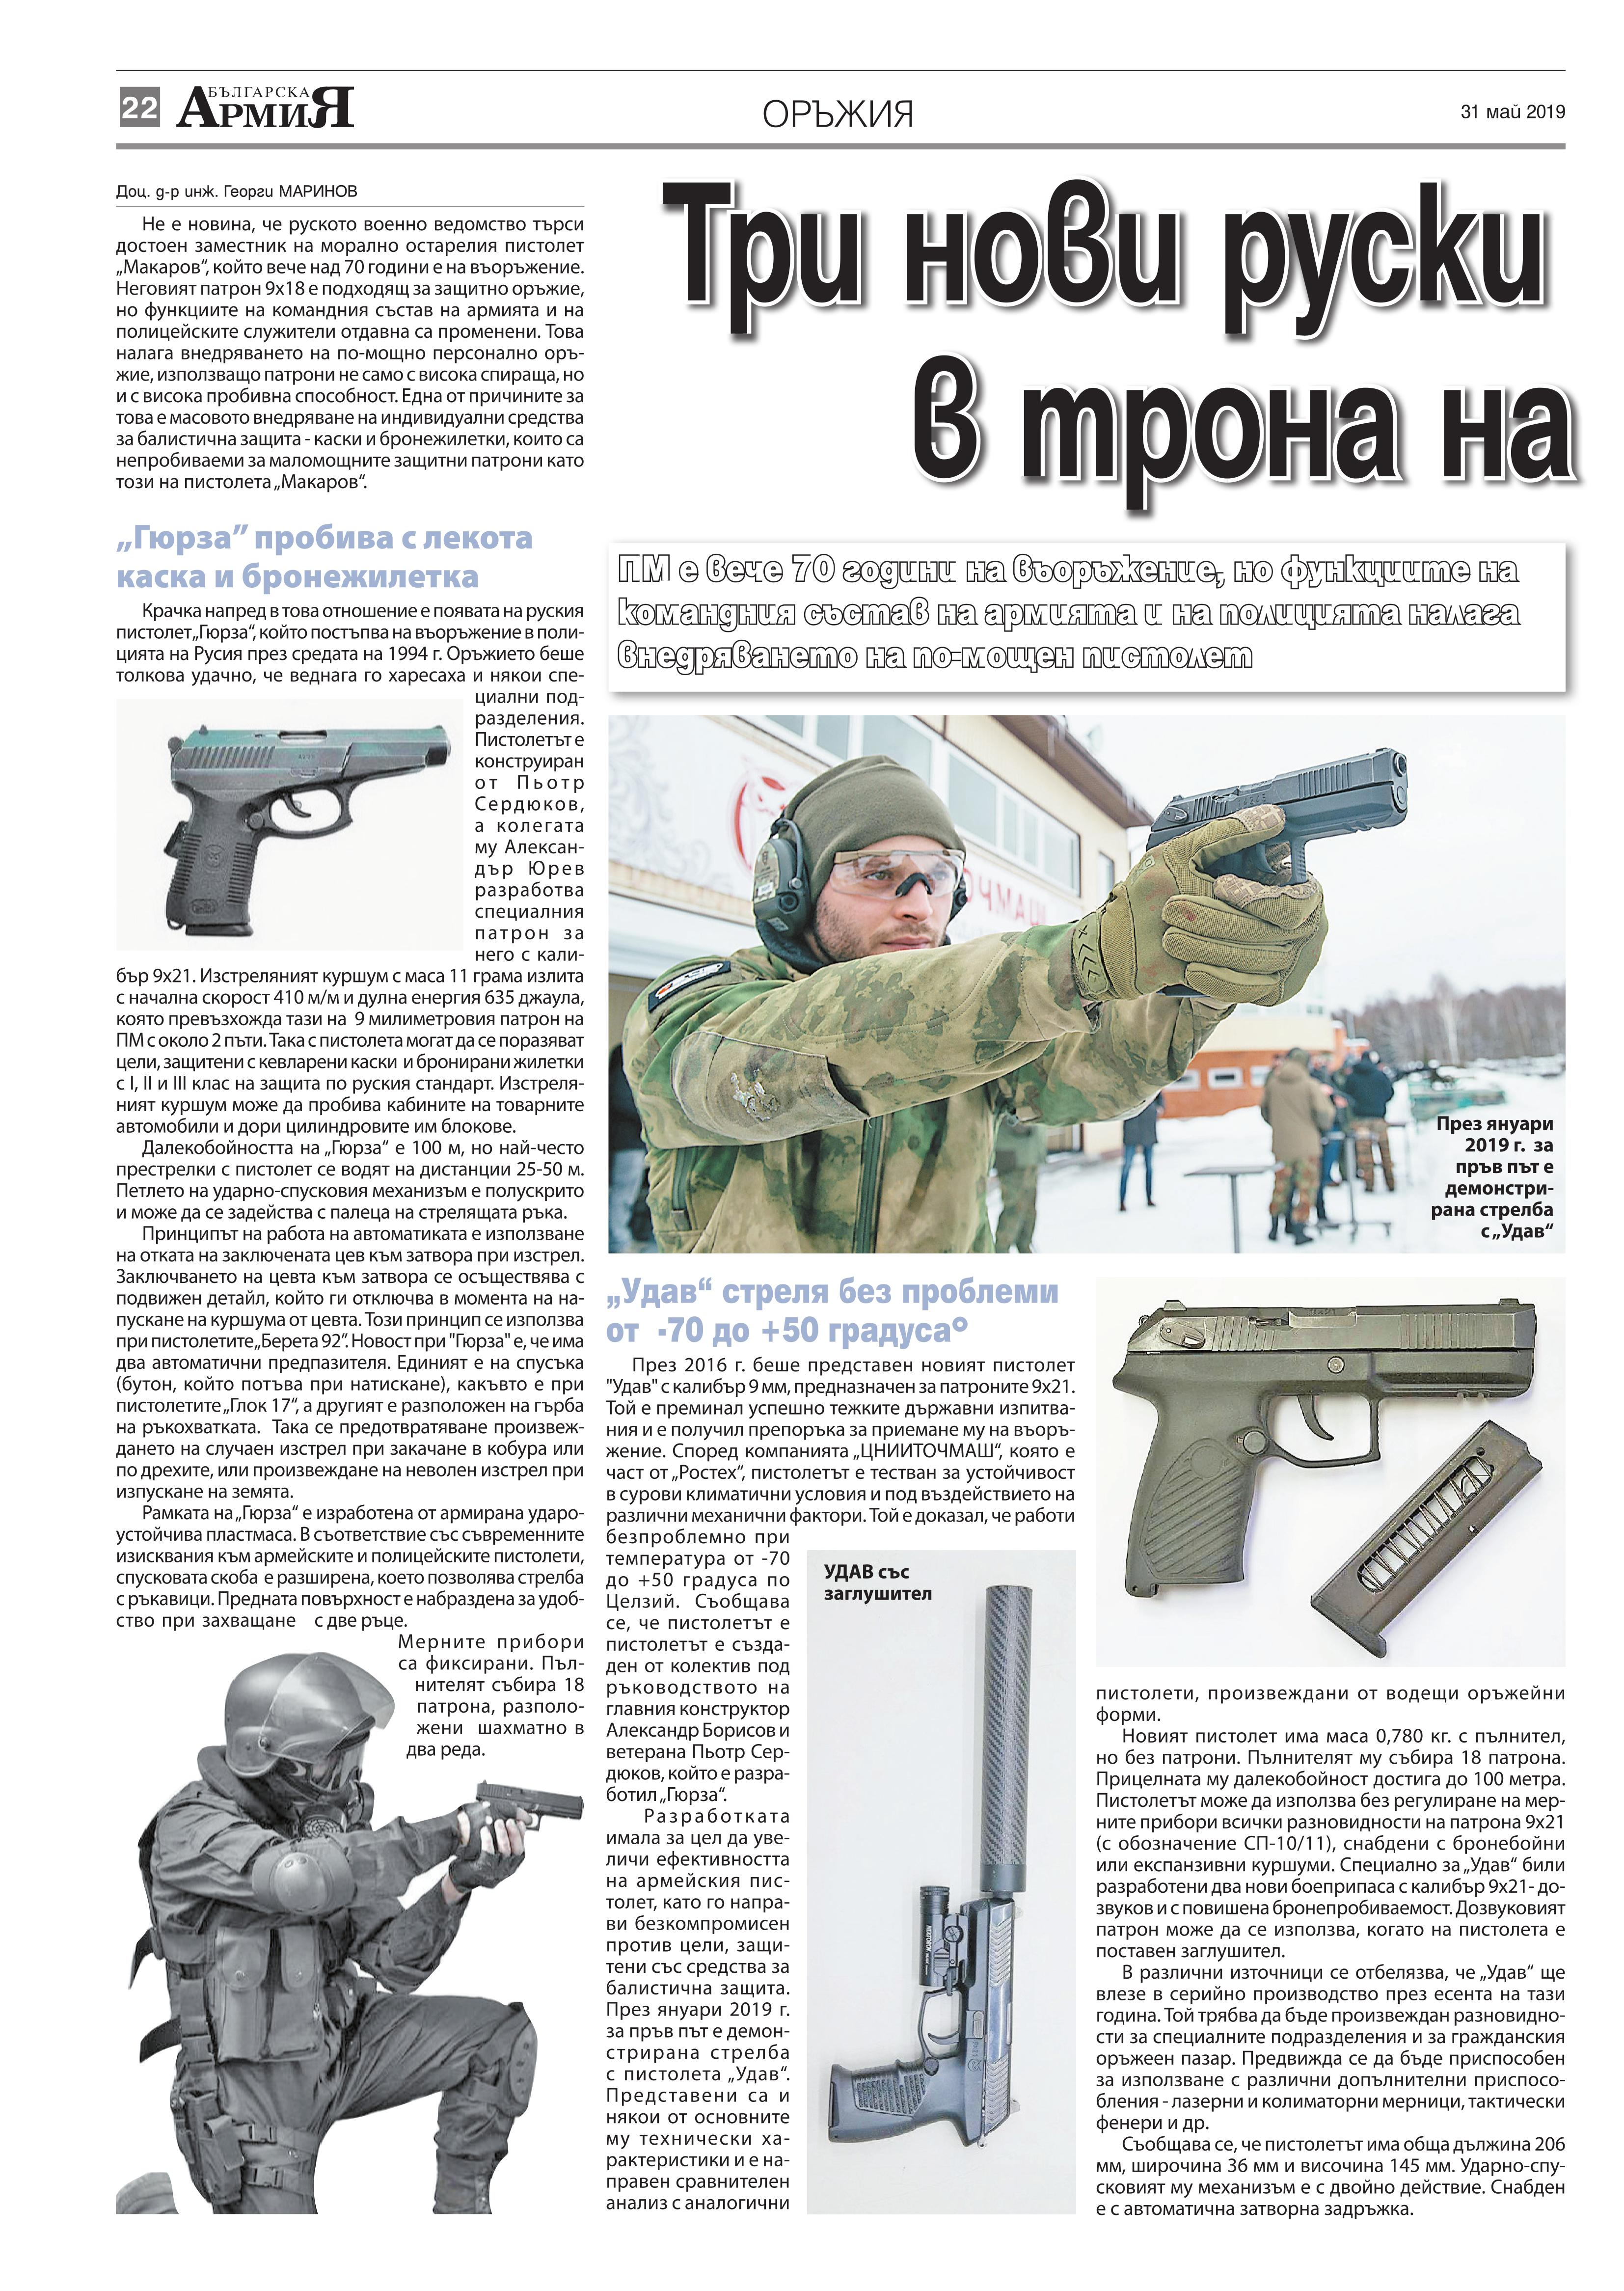 https://armymedia.bg/wp-content/uploads/2015/06/22.page1_-97.jpg